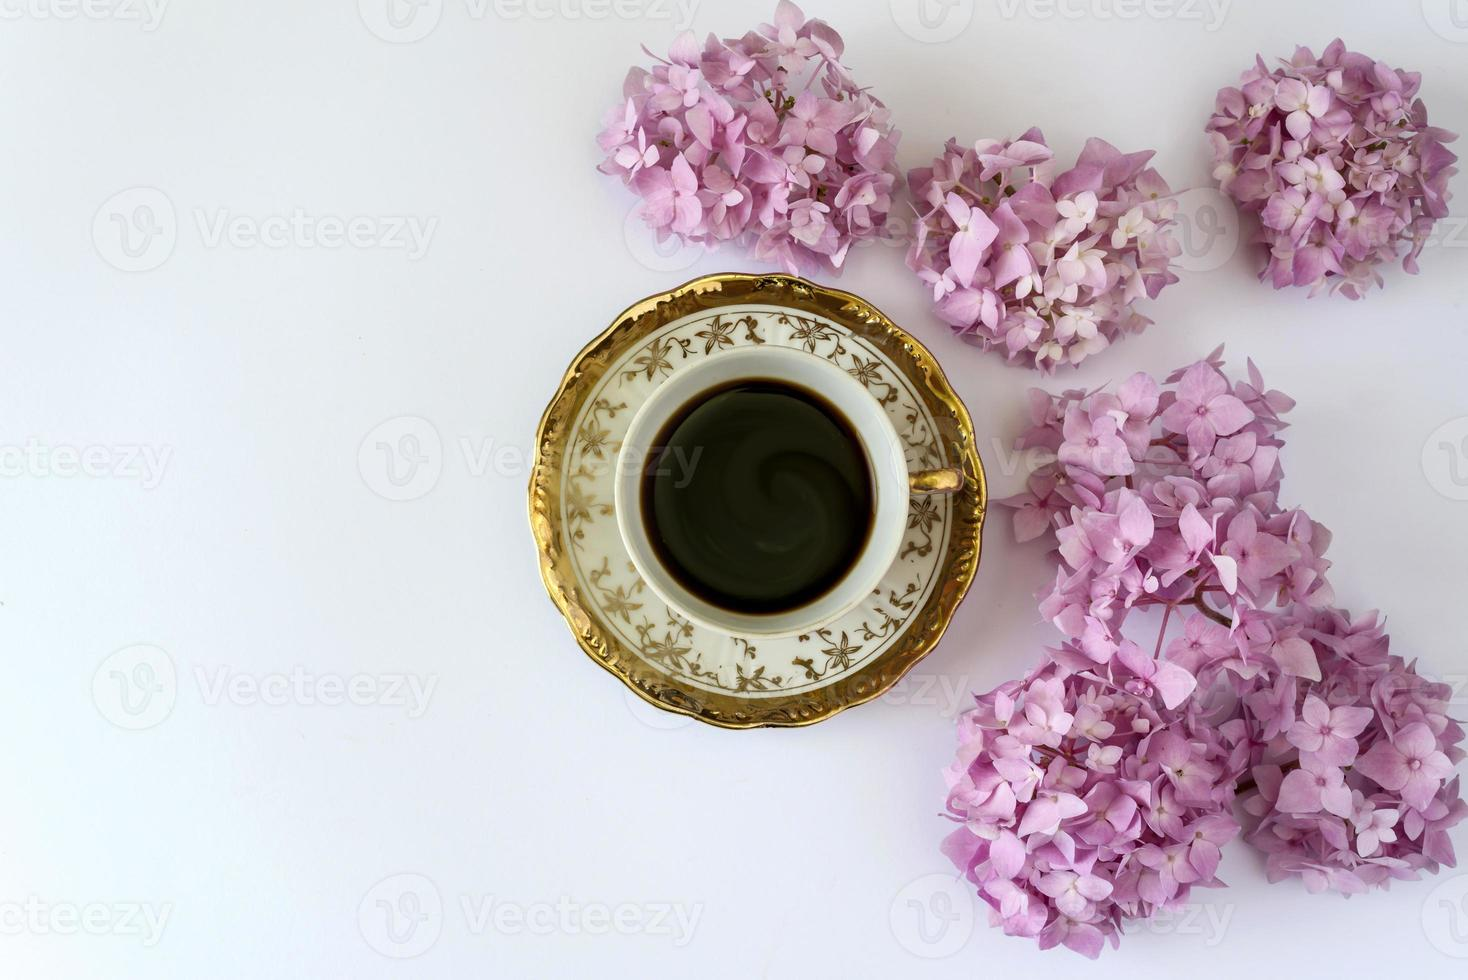 cup of coffee, on white background with flowers, photo